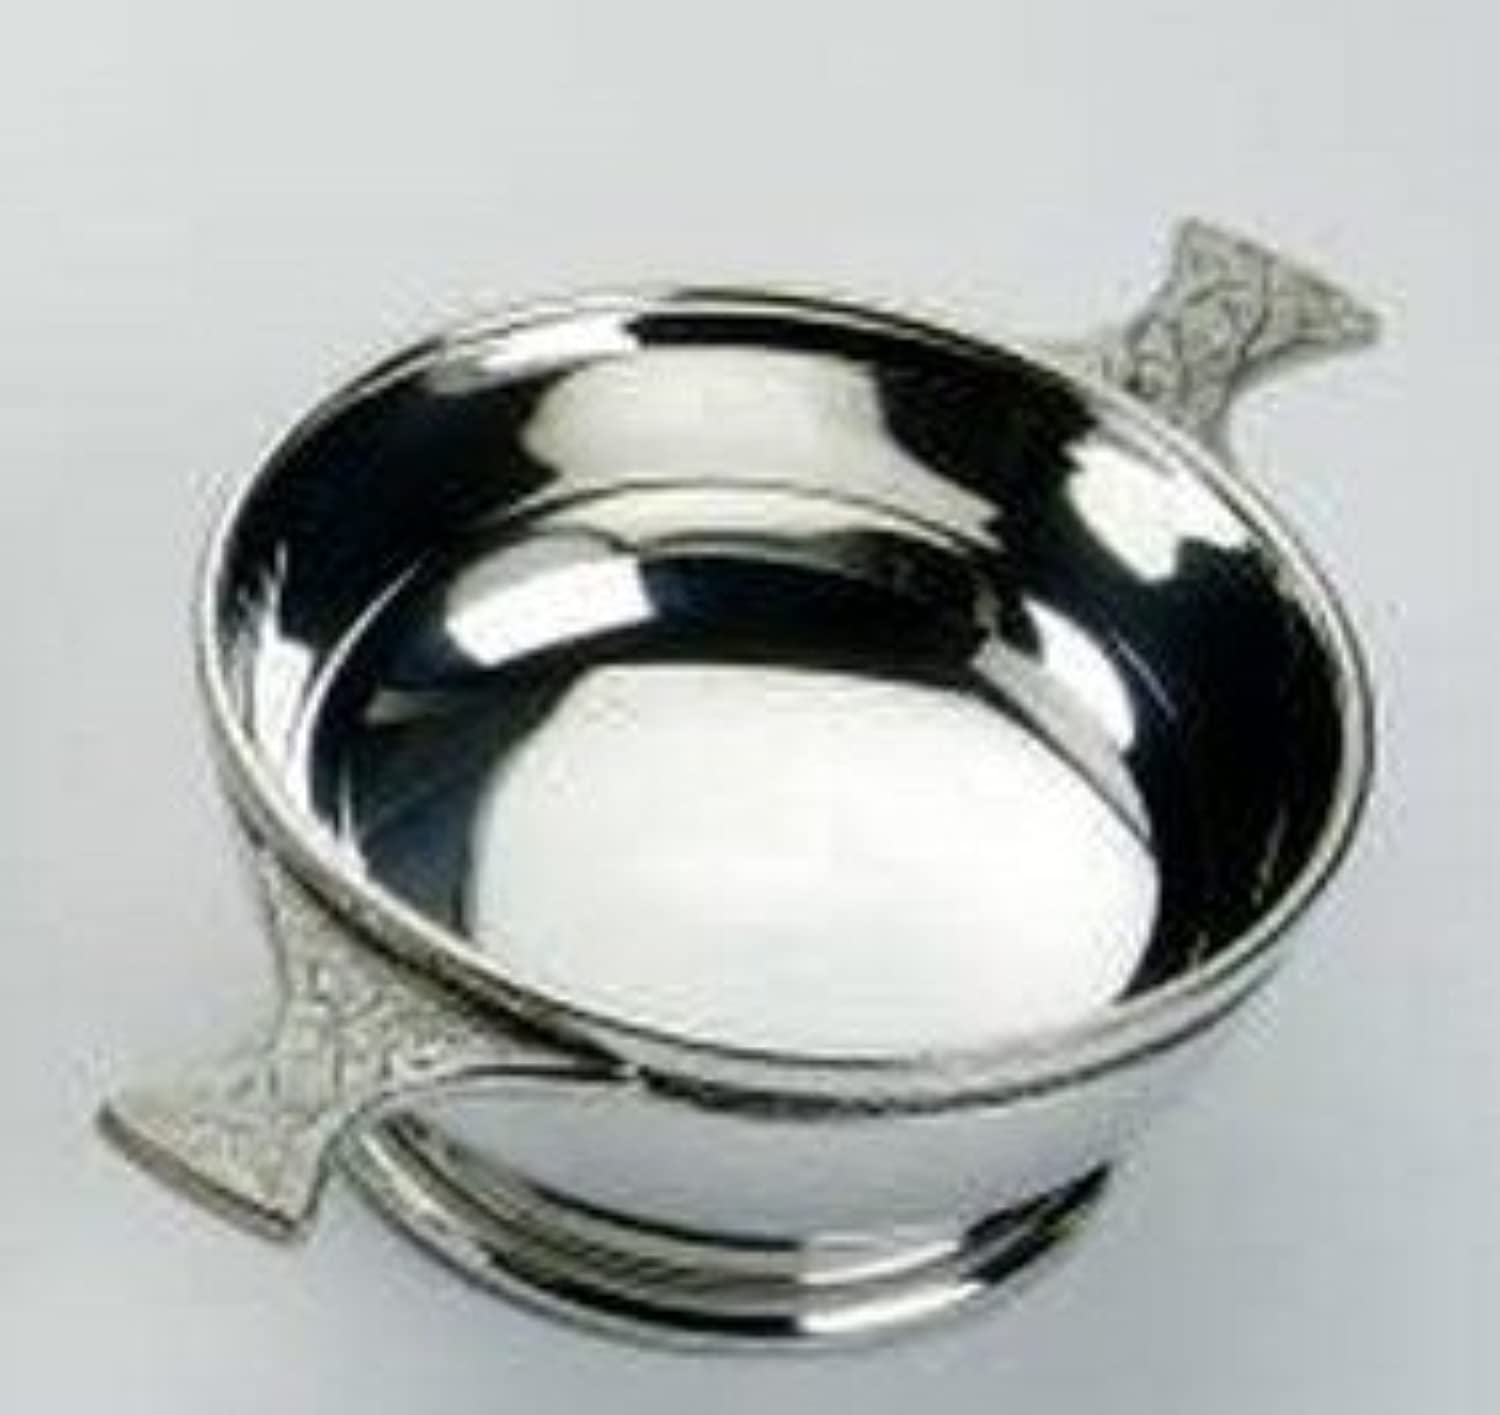 5  Quaich made made made from fine English Pewter comes with a prideindetails box ref 15500 18d3a5